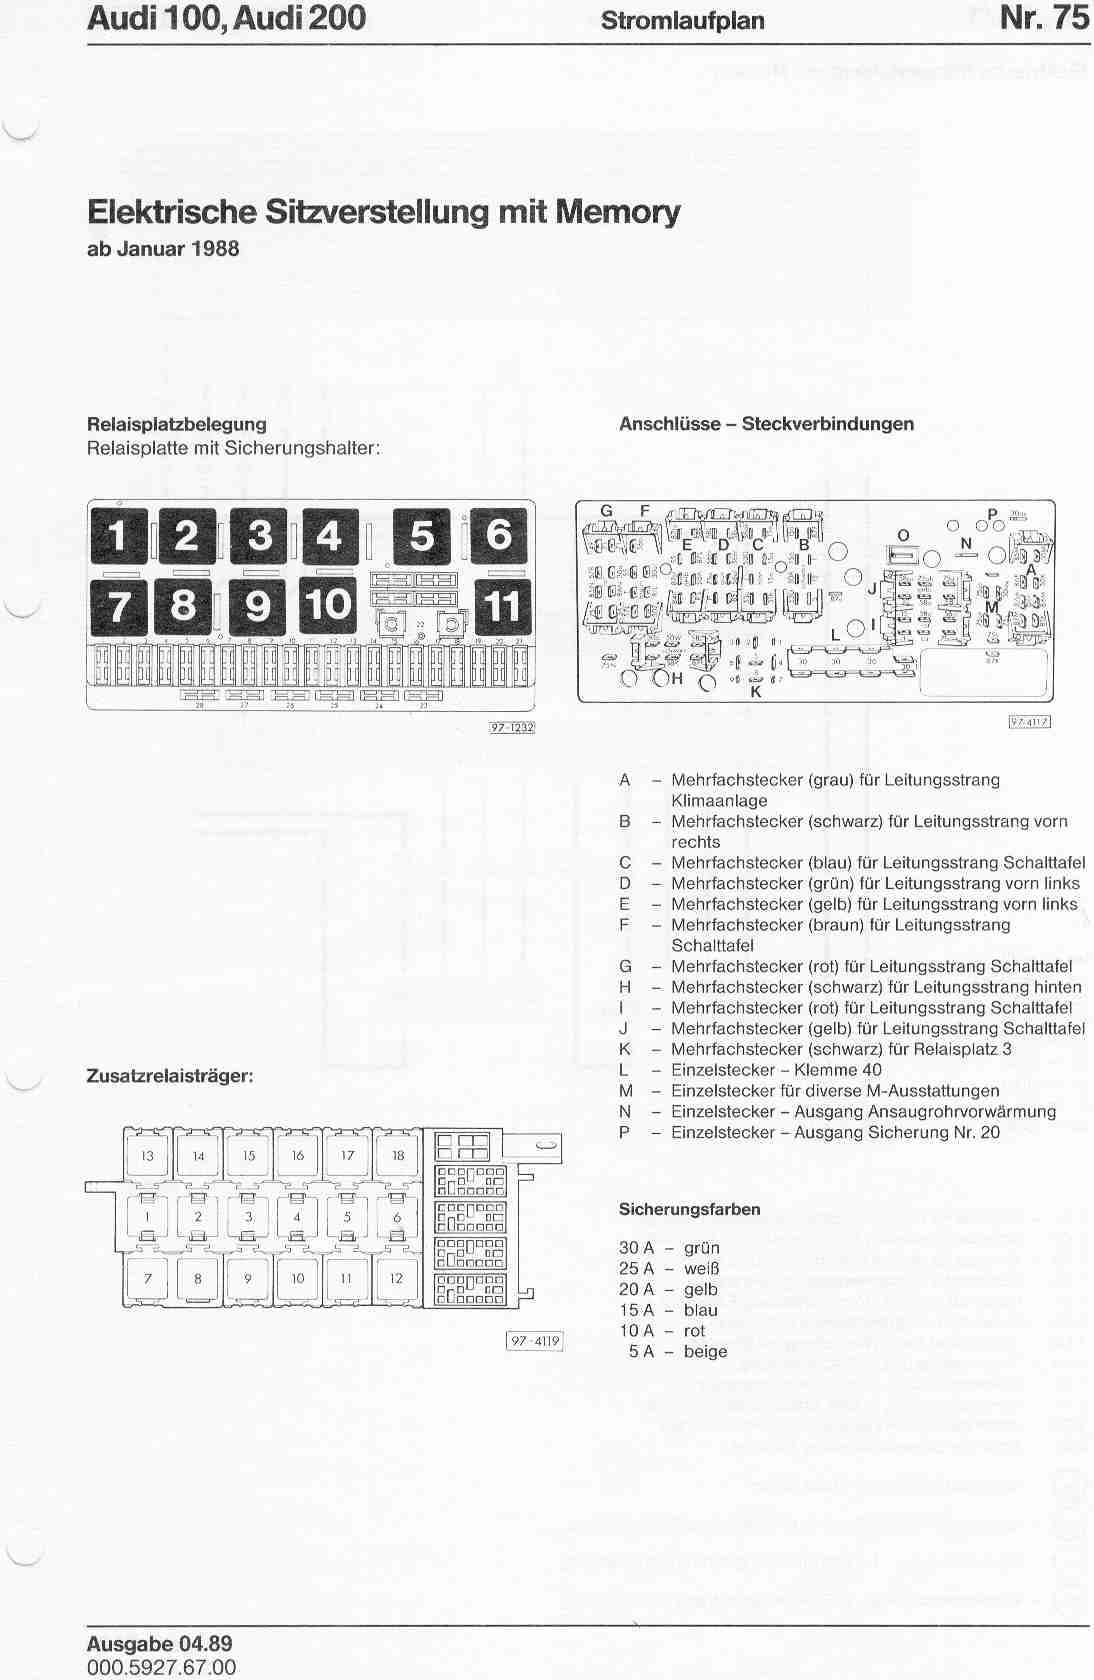 2001 Audi Tt Wiring Diagram 27 Images Skoda Roomster Fuse Box Sitz01 100 200 Factory Diagrams At